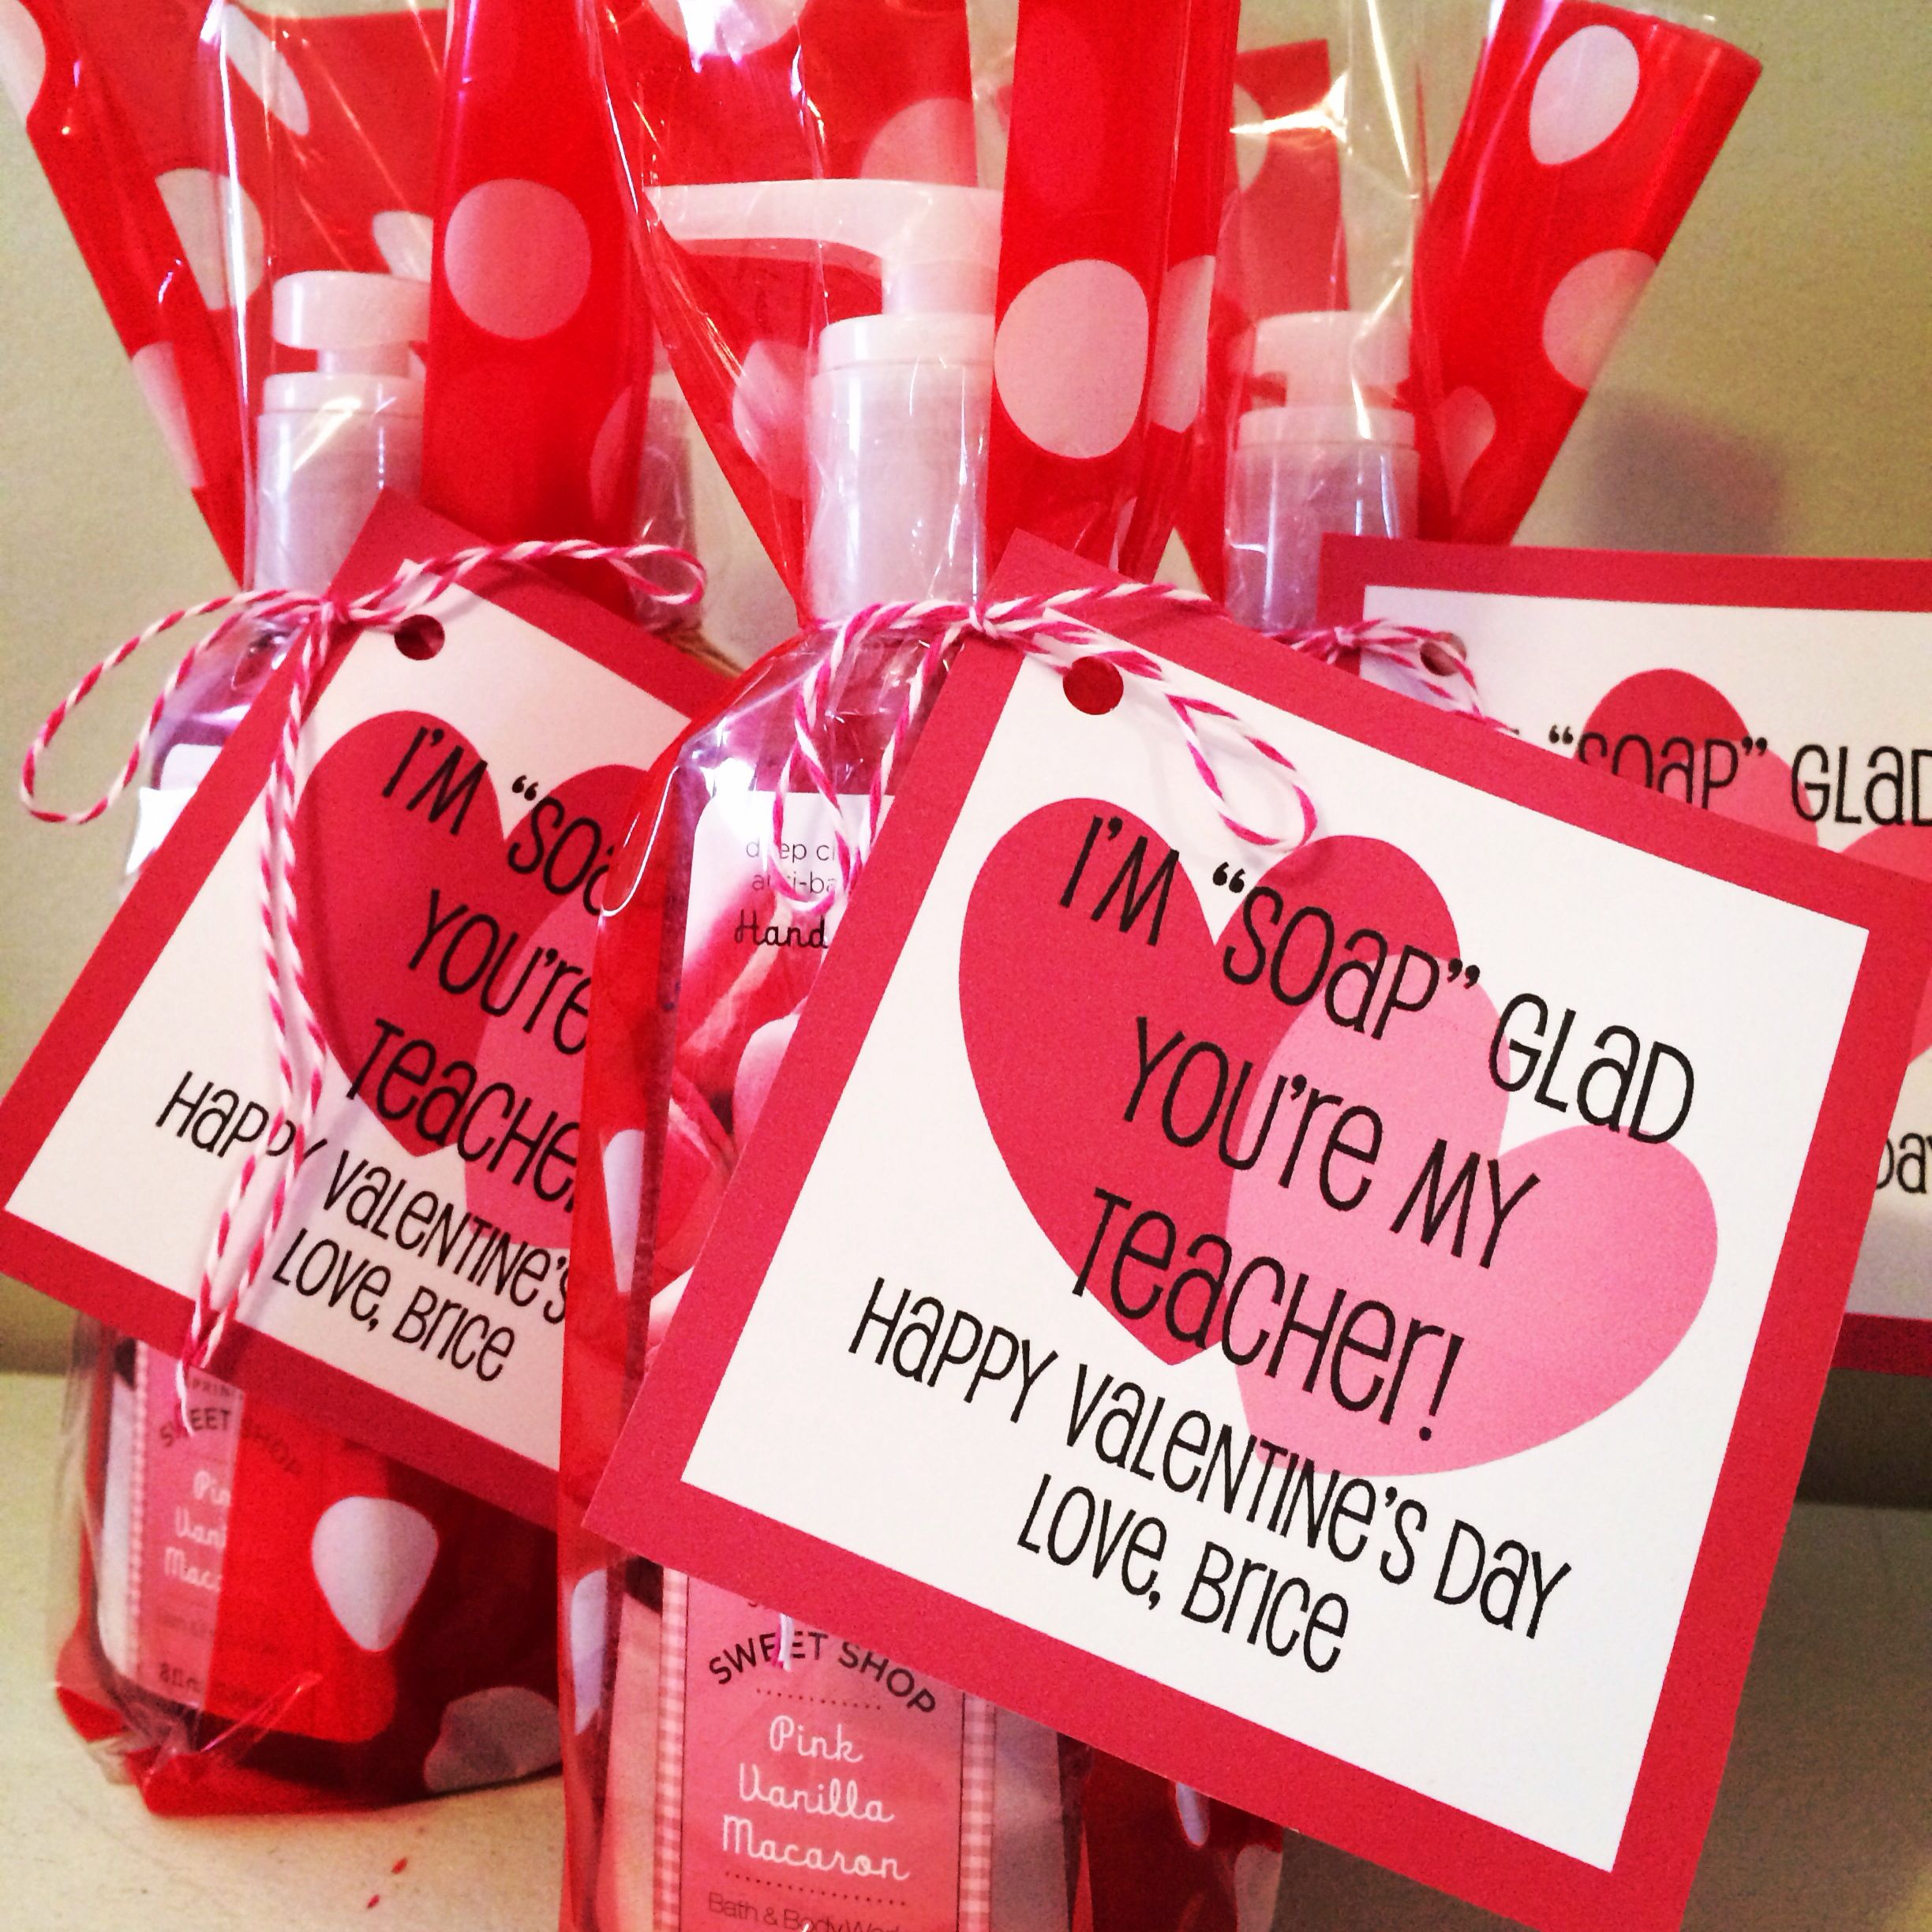 Teacher Gifts For Valentine S Day On Sale Soap From B Bw Packaged